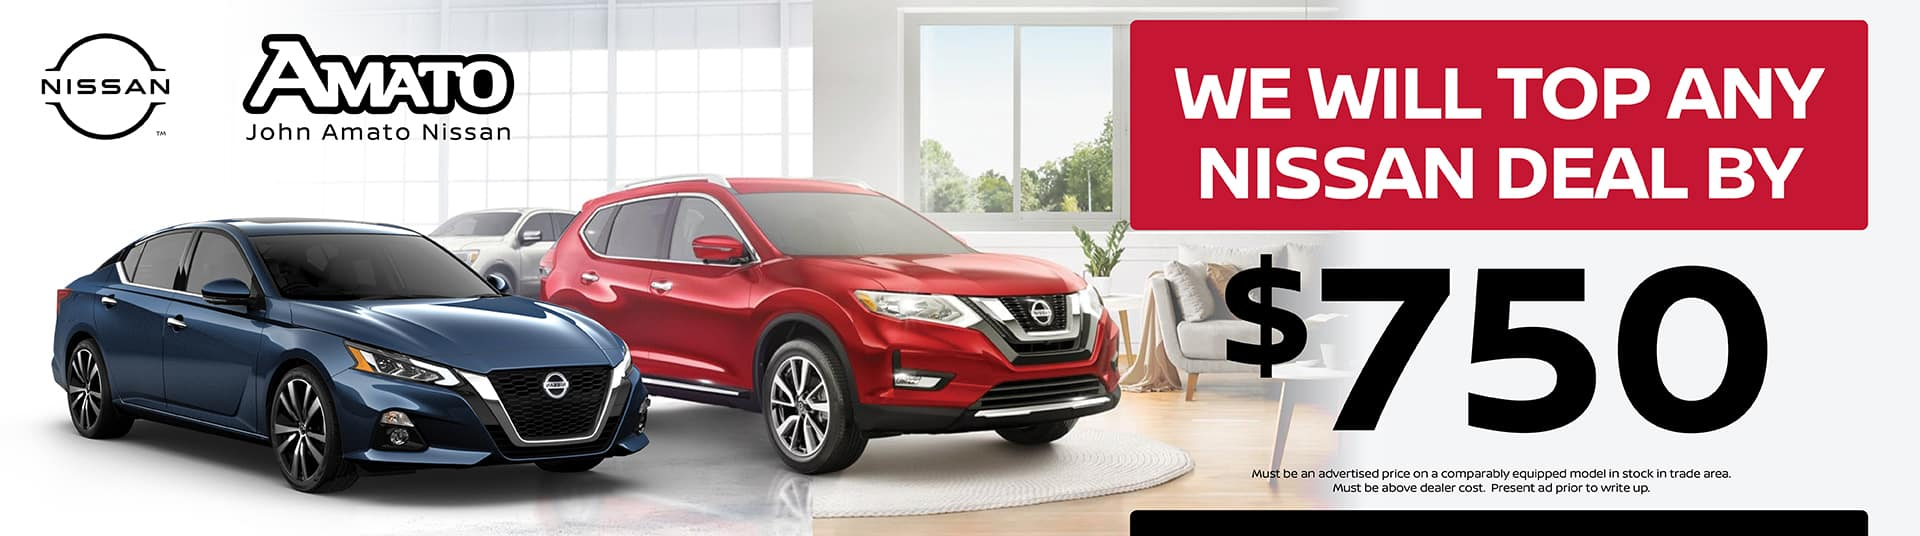 We will top any Nissan deal!